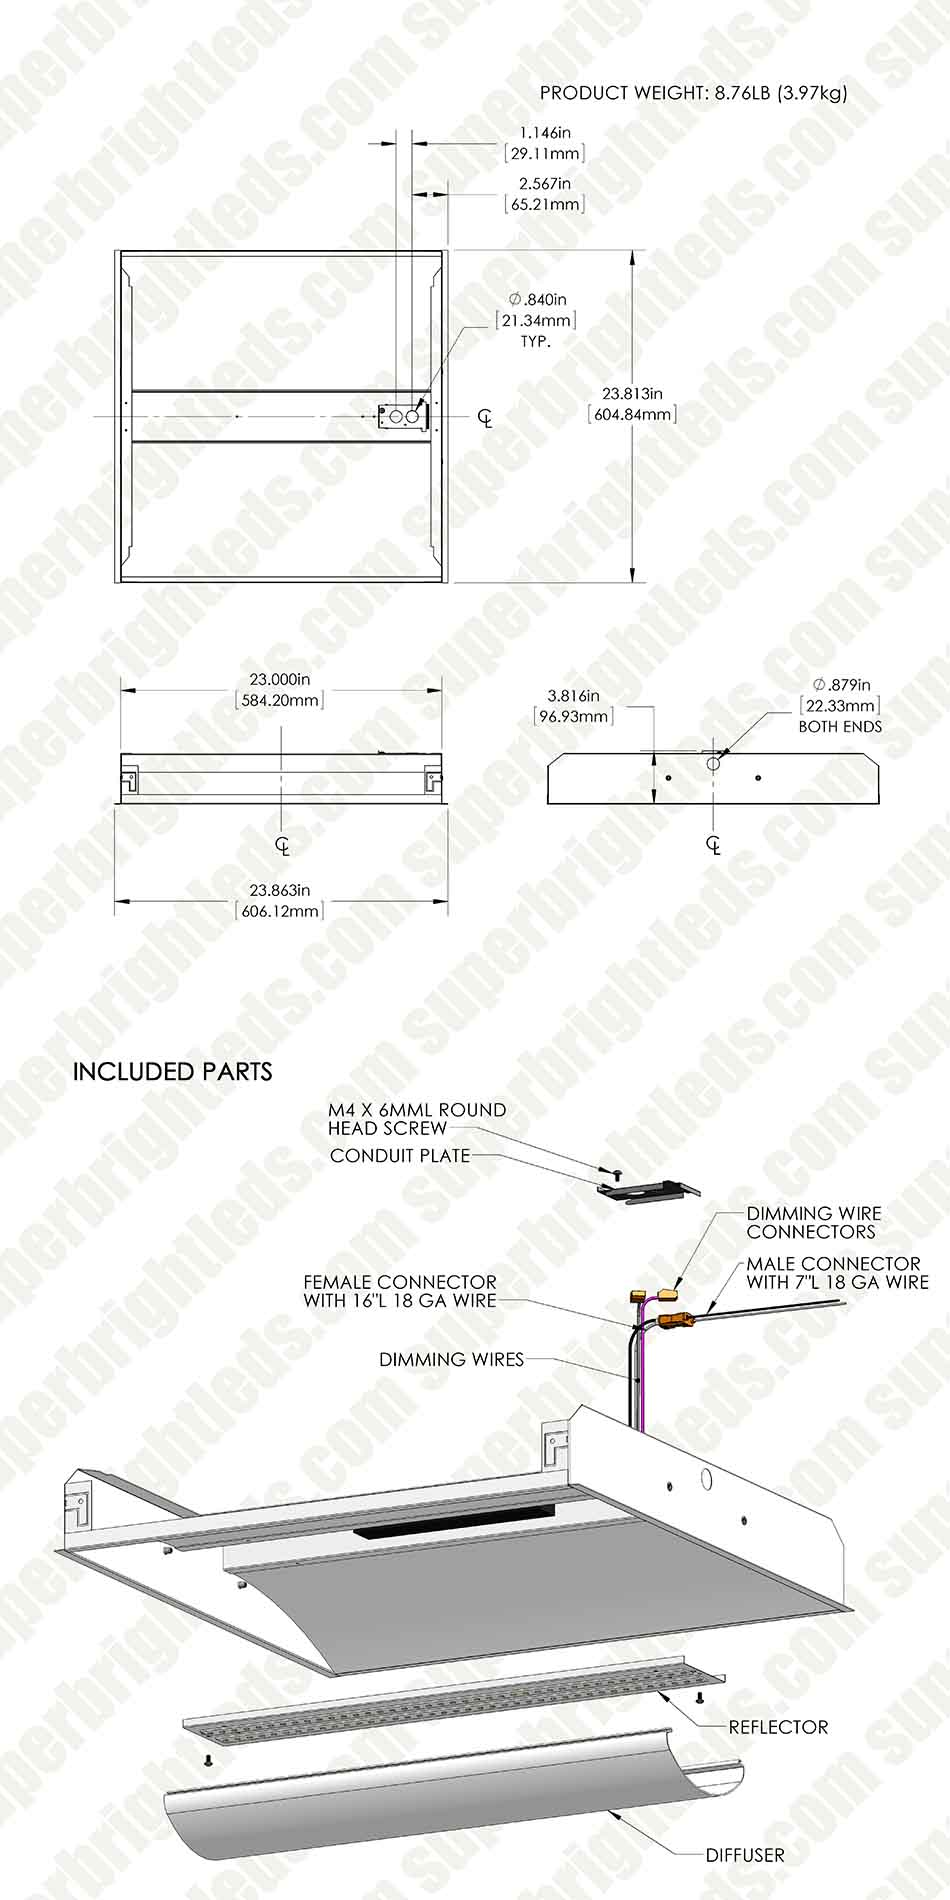 Led Troffer Wiring Diagram Anything Diagrams Recessed Can Light 34w W Center Basket 2ft X 3 900 Rh Superbrightleds Com 12v Lithonia Lighting